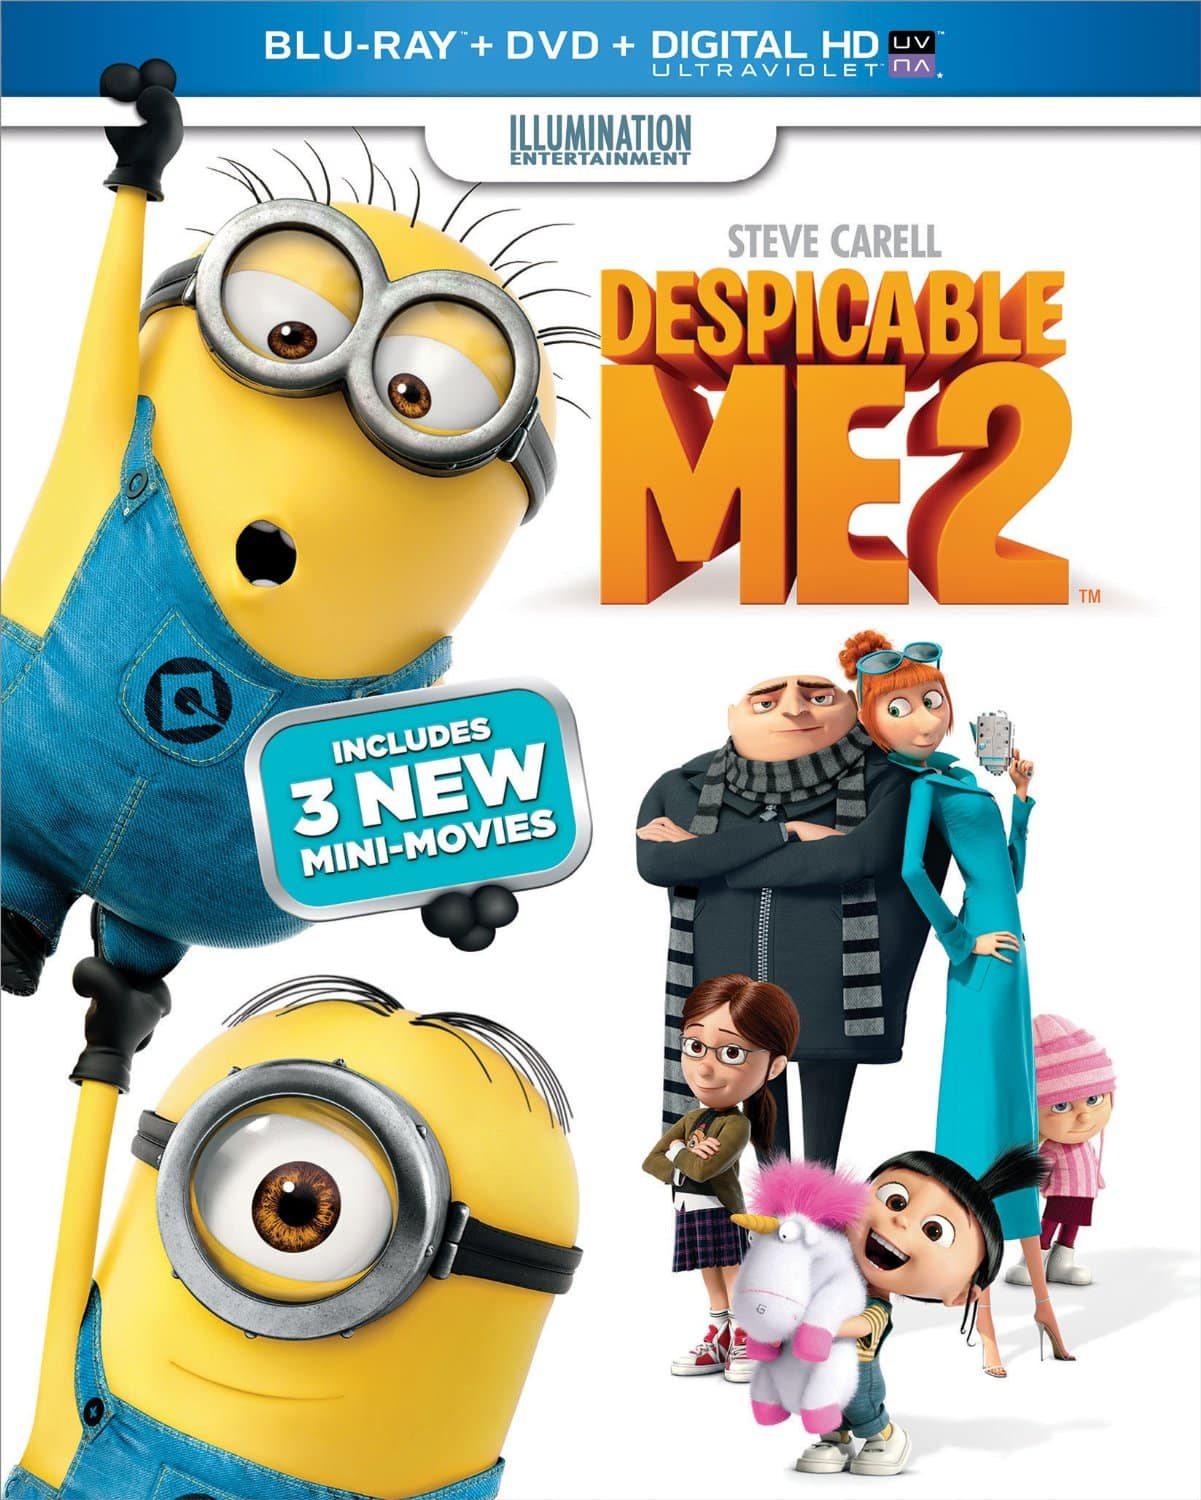 Despicable Me 2 or How to Train Your Dragon 2 (Blu-ray + DVD + Digital HD) $10 Each @ Amazon